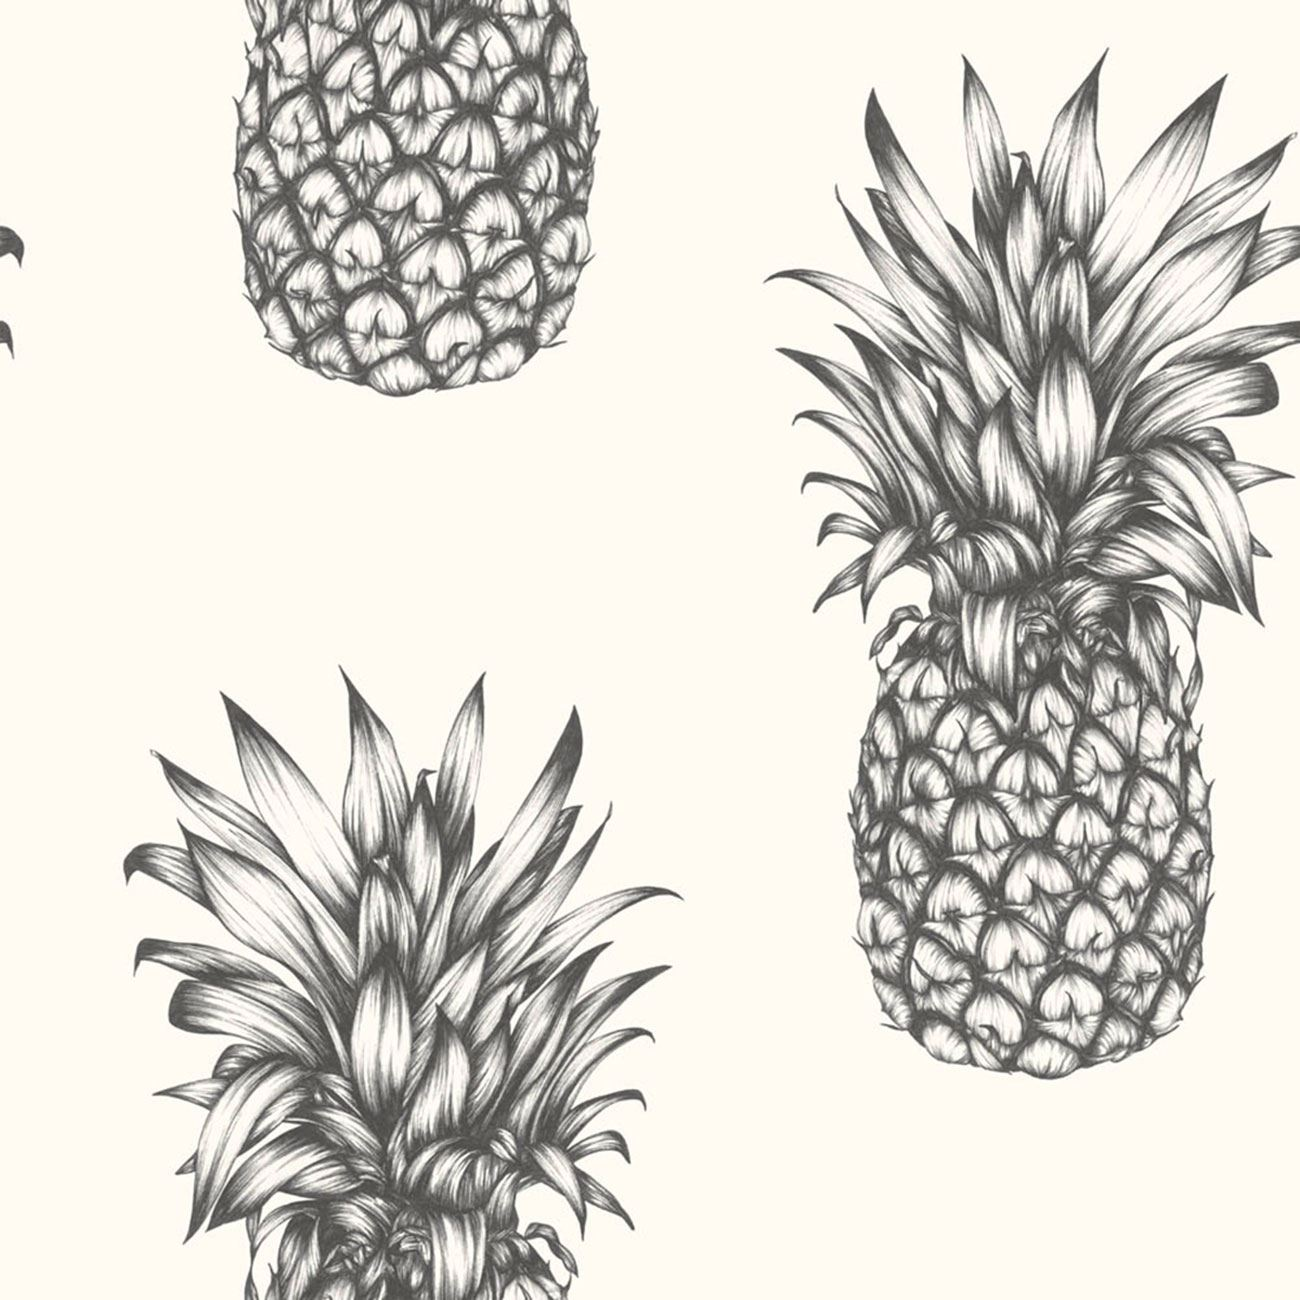 arthouse tropics copacabana ananas papier peint dor noir blanc aspect mur ebay. Black Bedroom Furniture Sets. Home Design Ideas